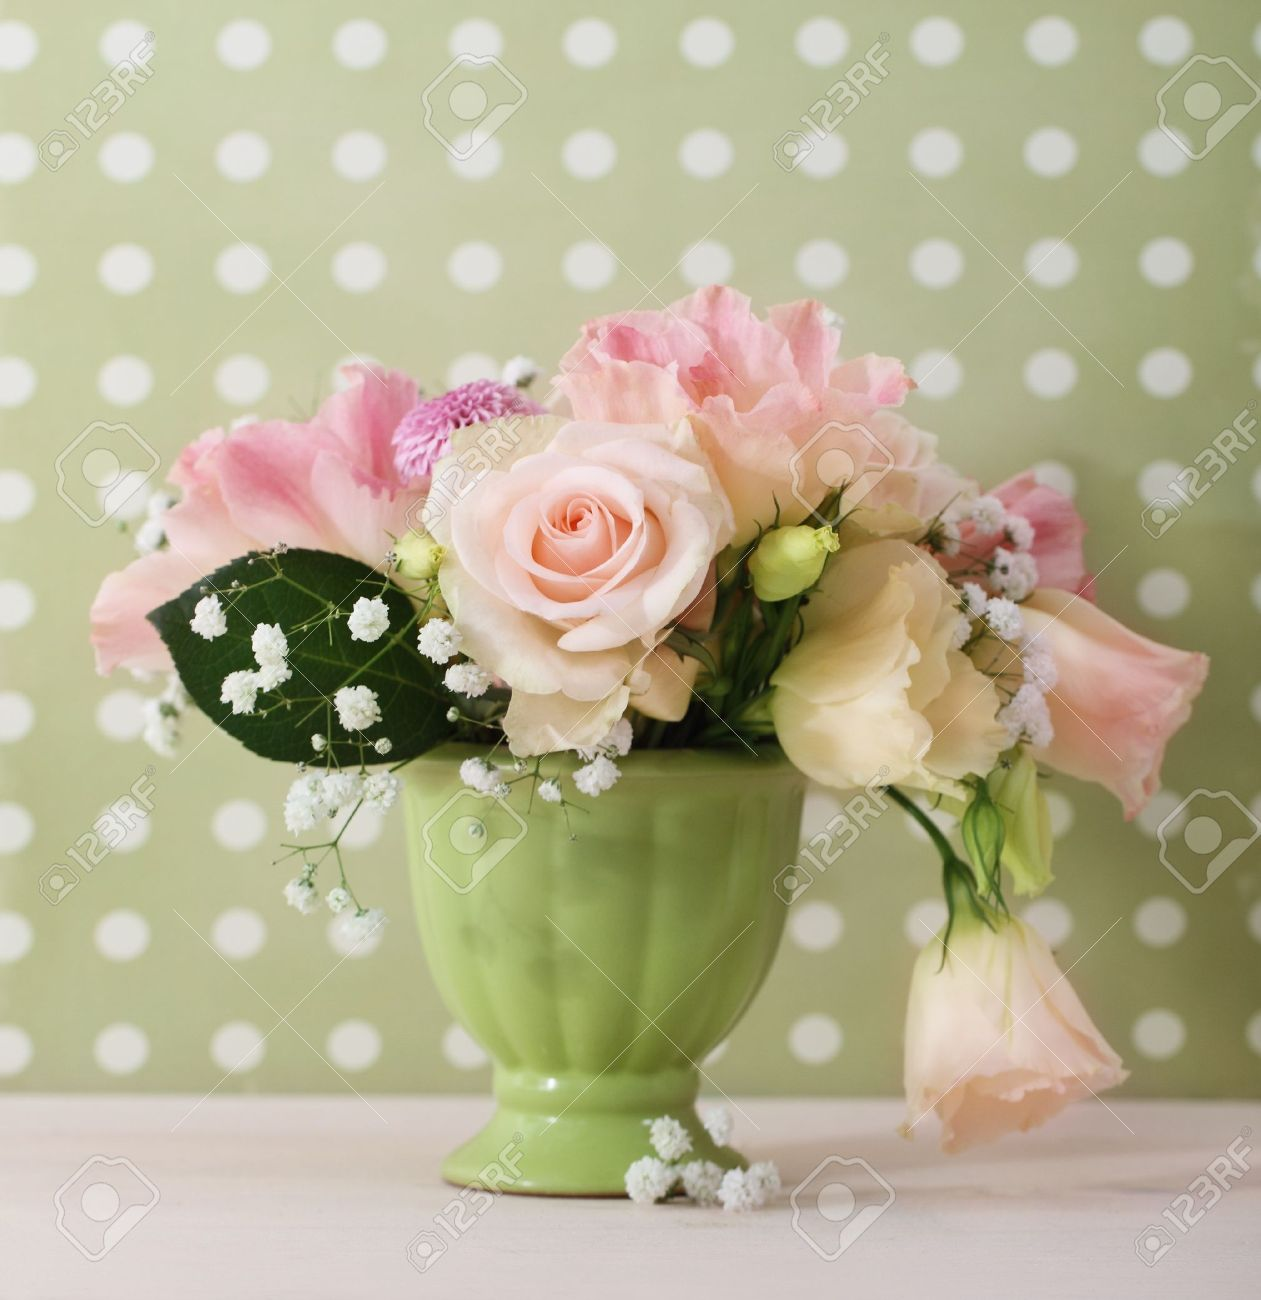 Flower vase images stock pictures royalty free flower vase bouquet of white and pink roses in the green vase stock photo reviewsmspy